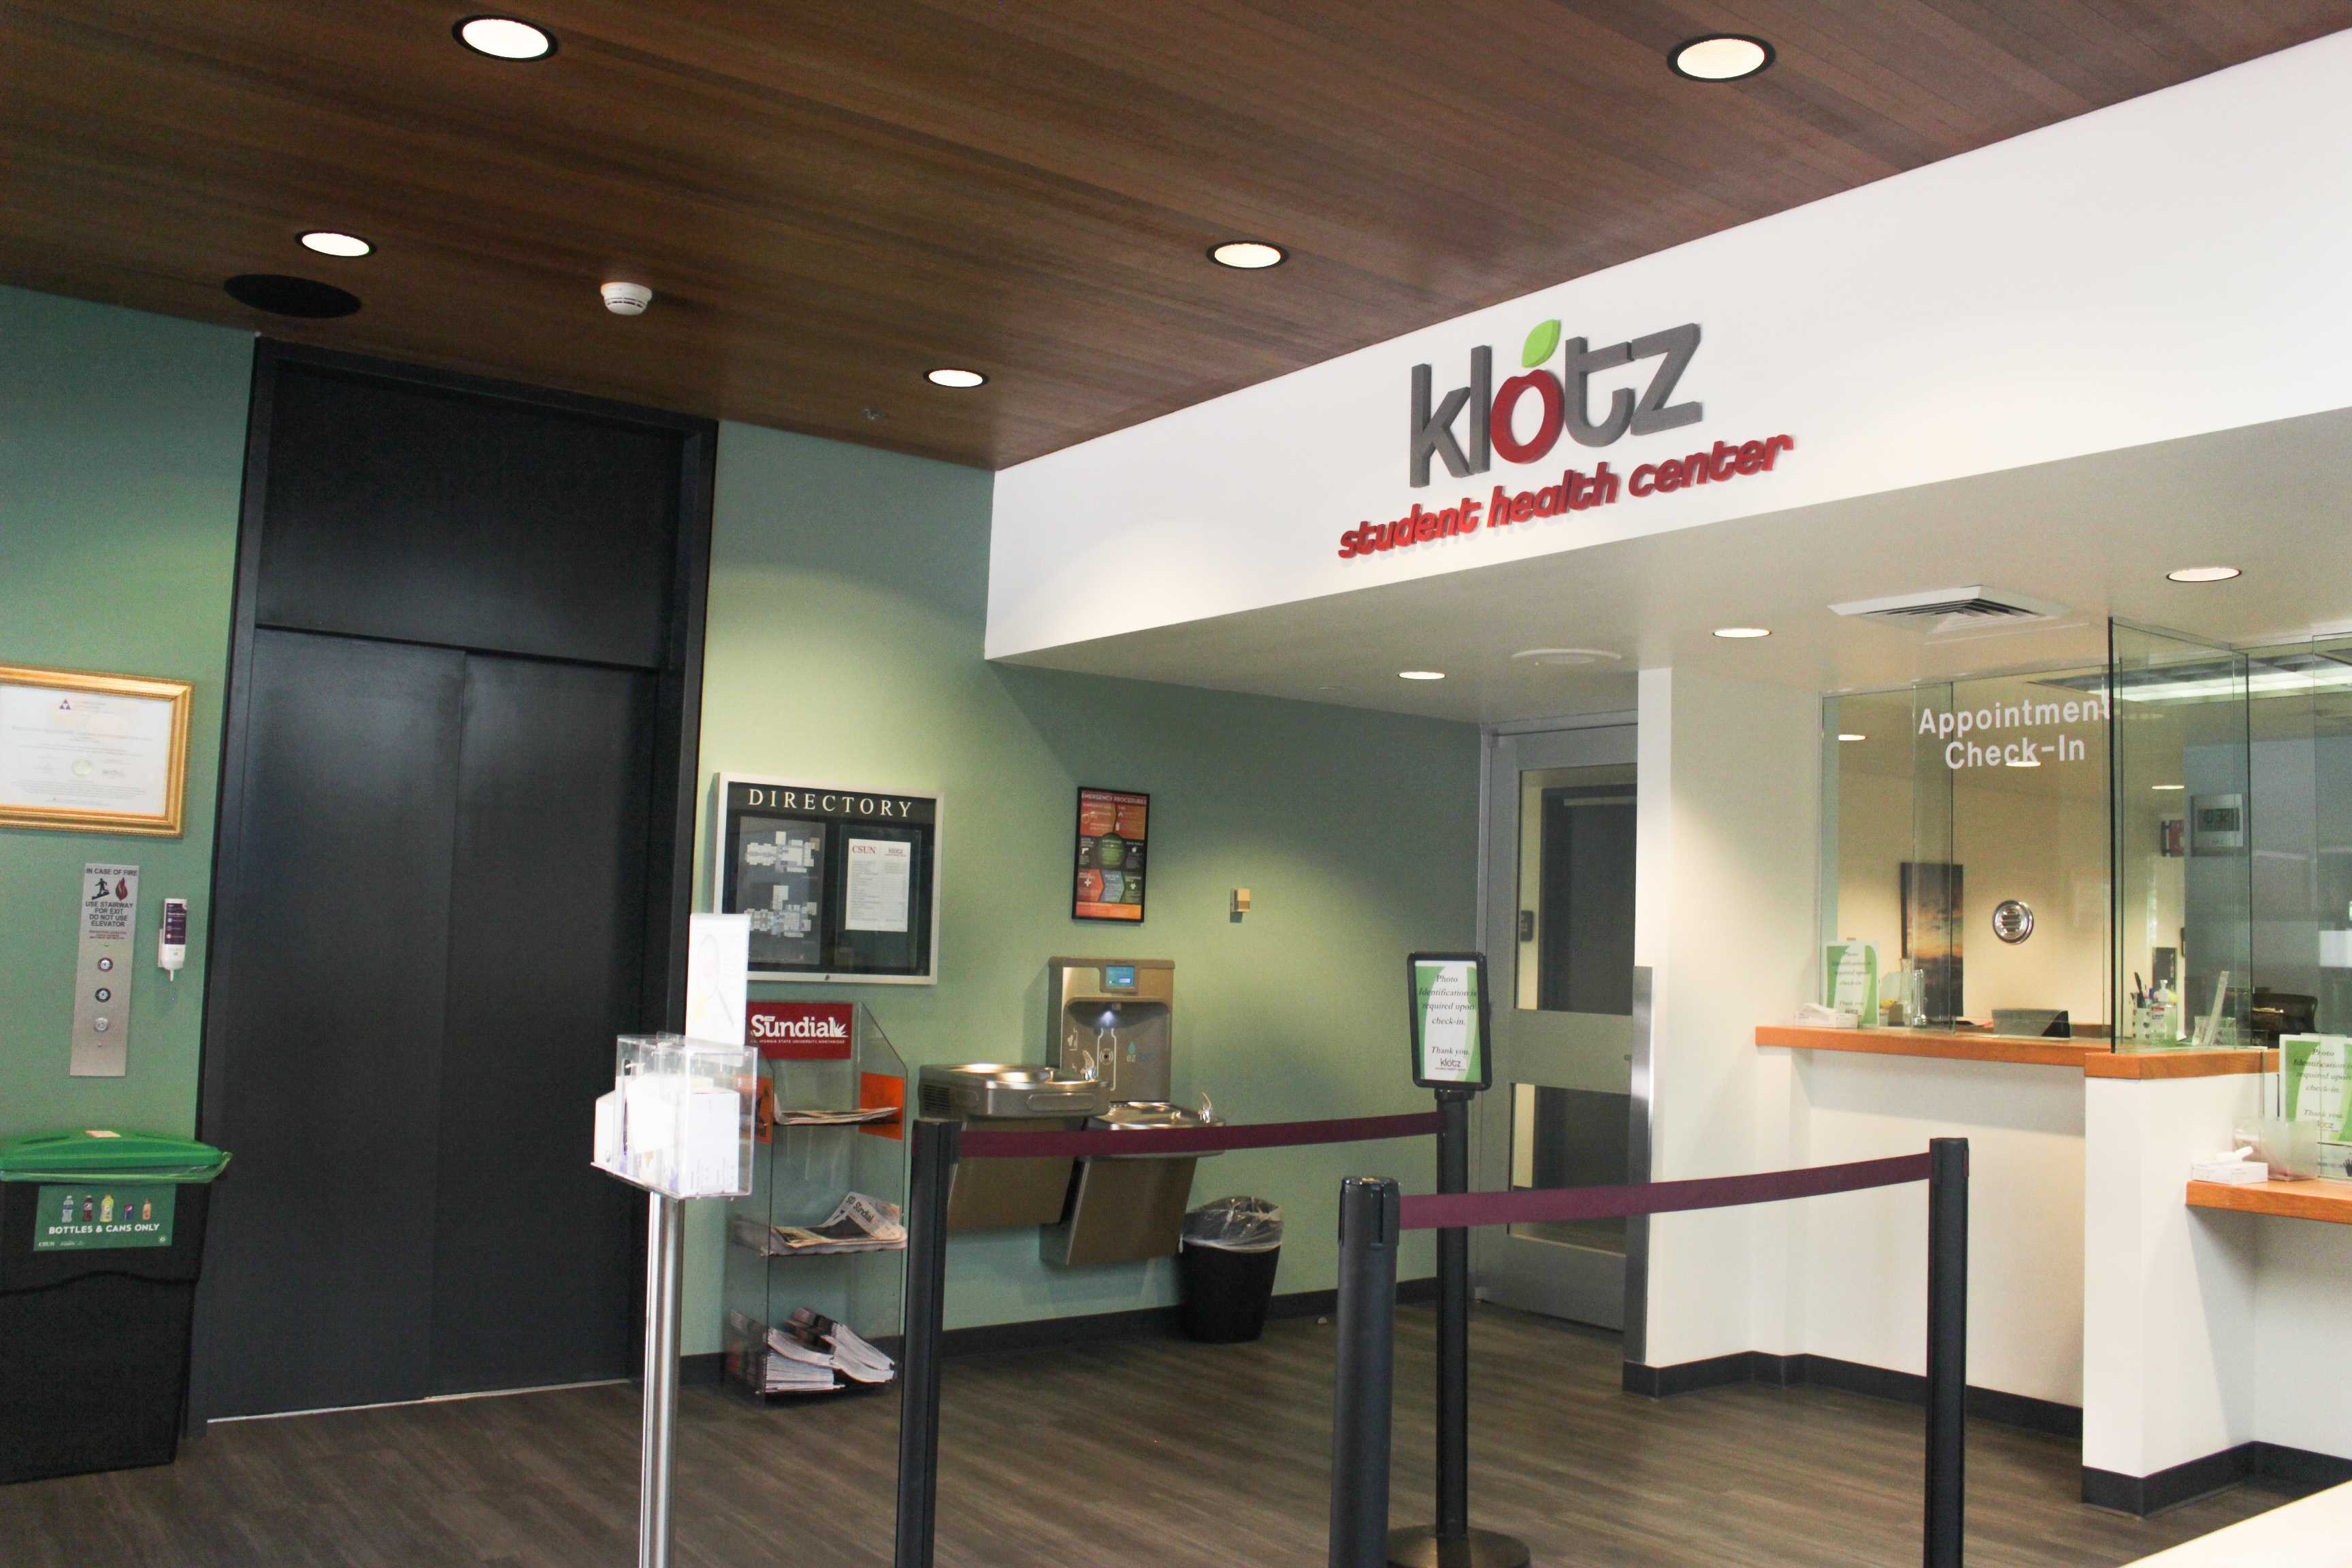 An inside picture of Klotz Student health center